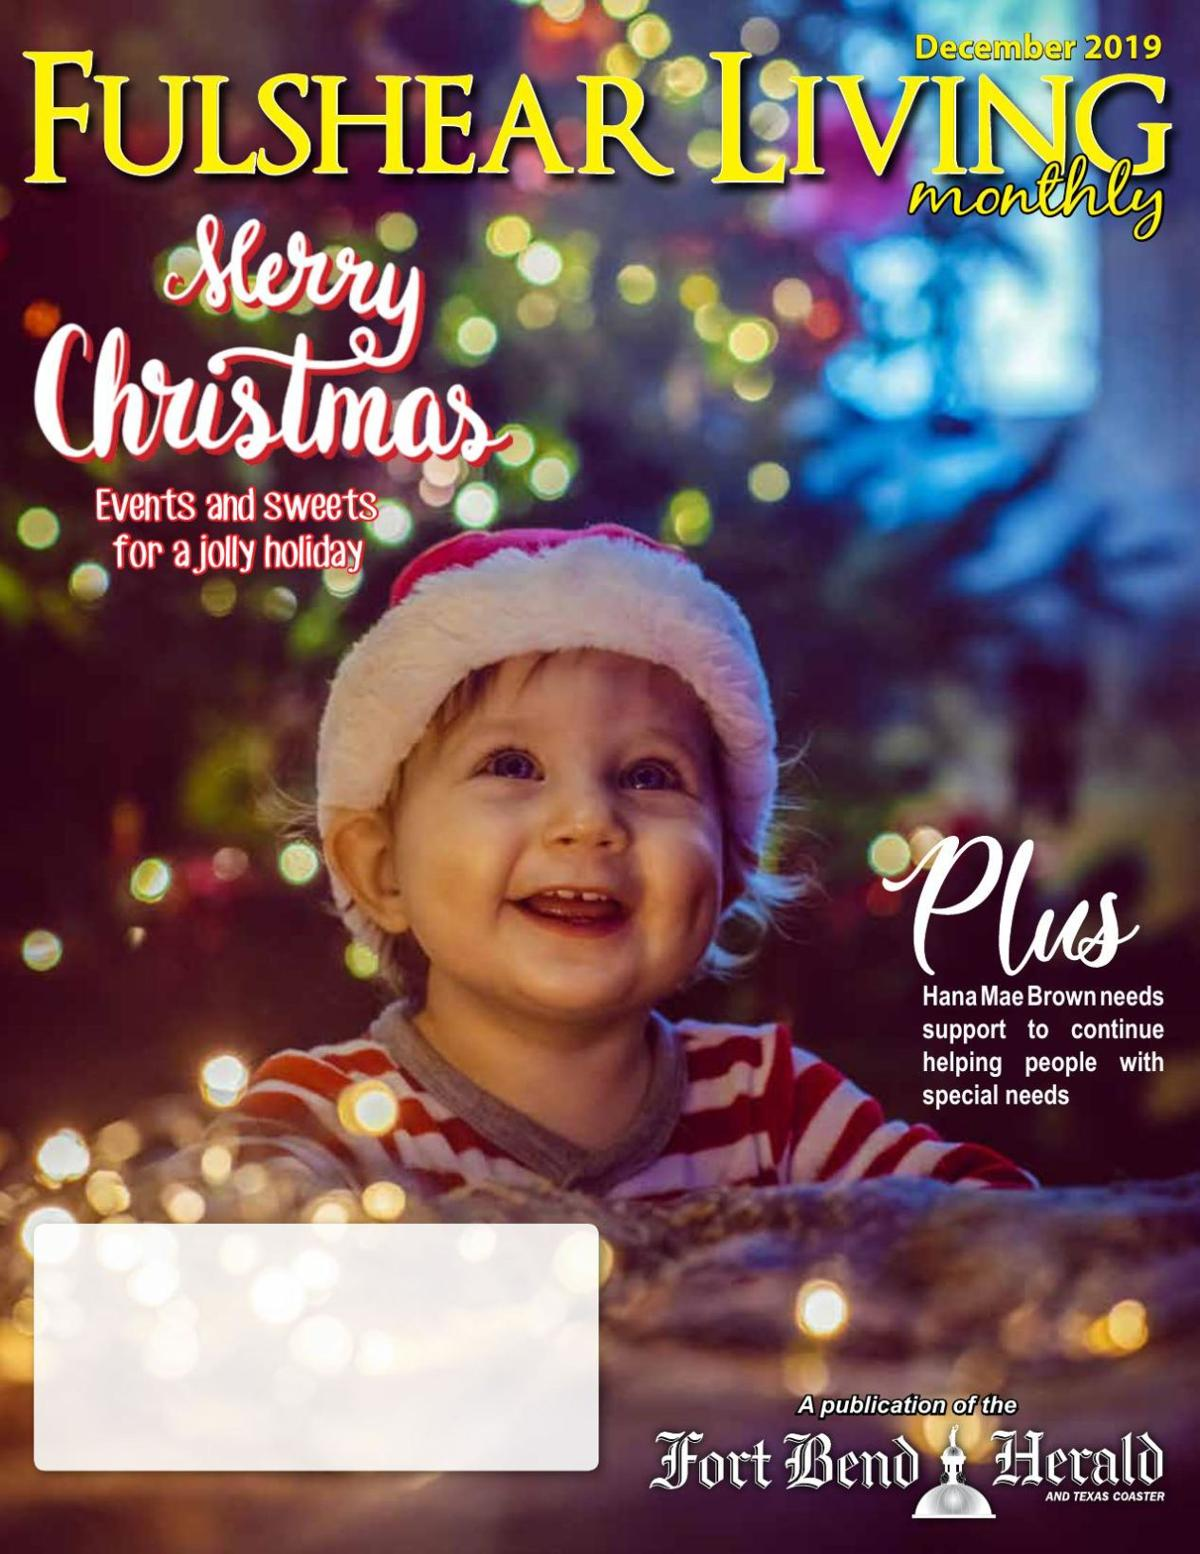 Fulshear Living: December 2019